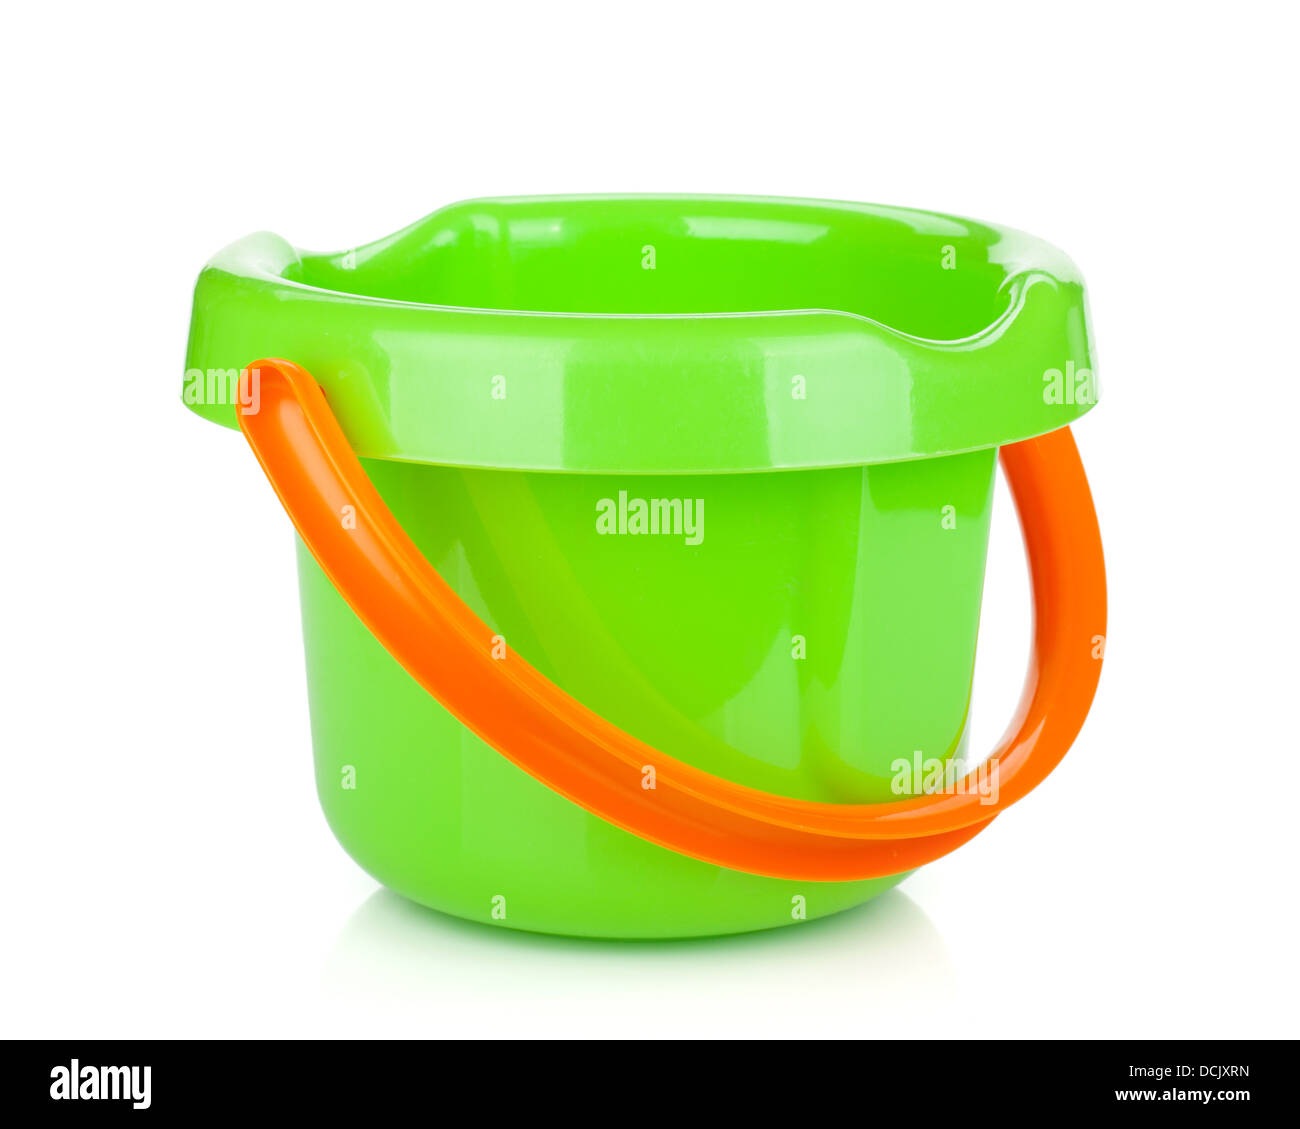 d9793307774bb5 Baby beach sand bucket. Isolated on white background Stock Photo ...